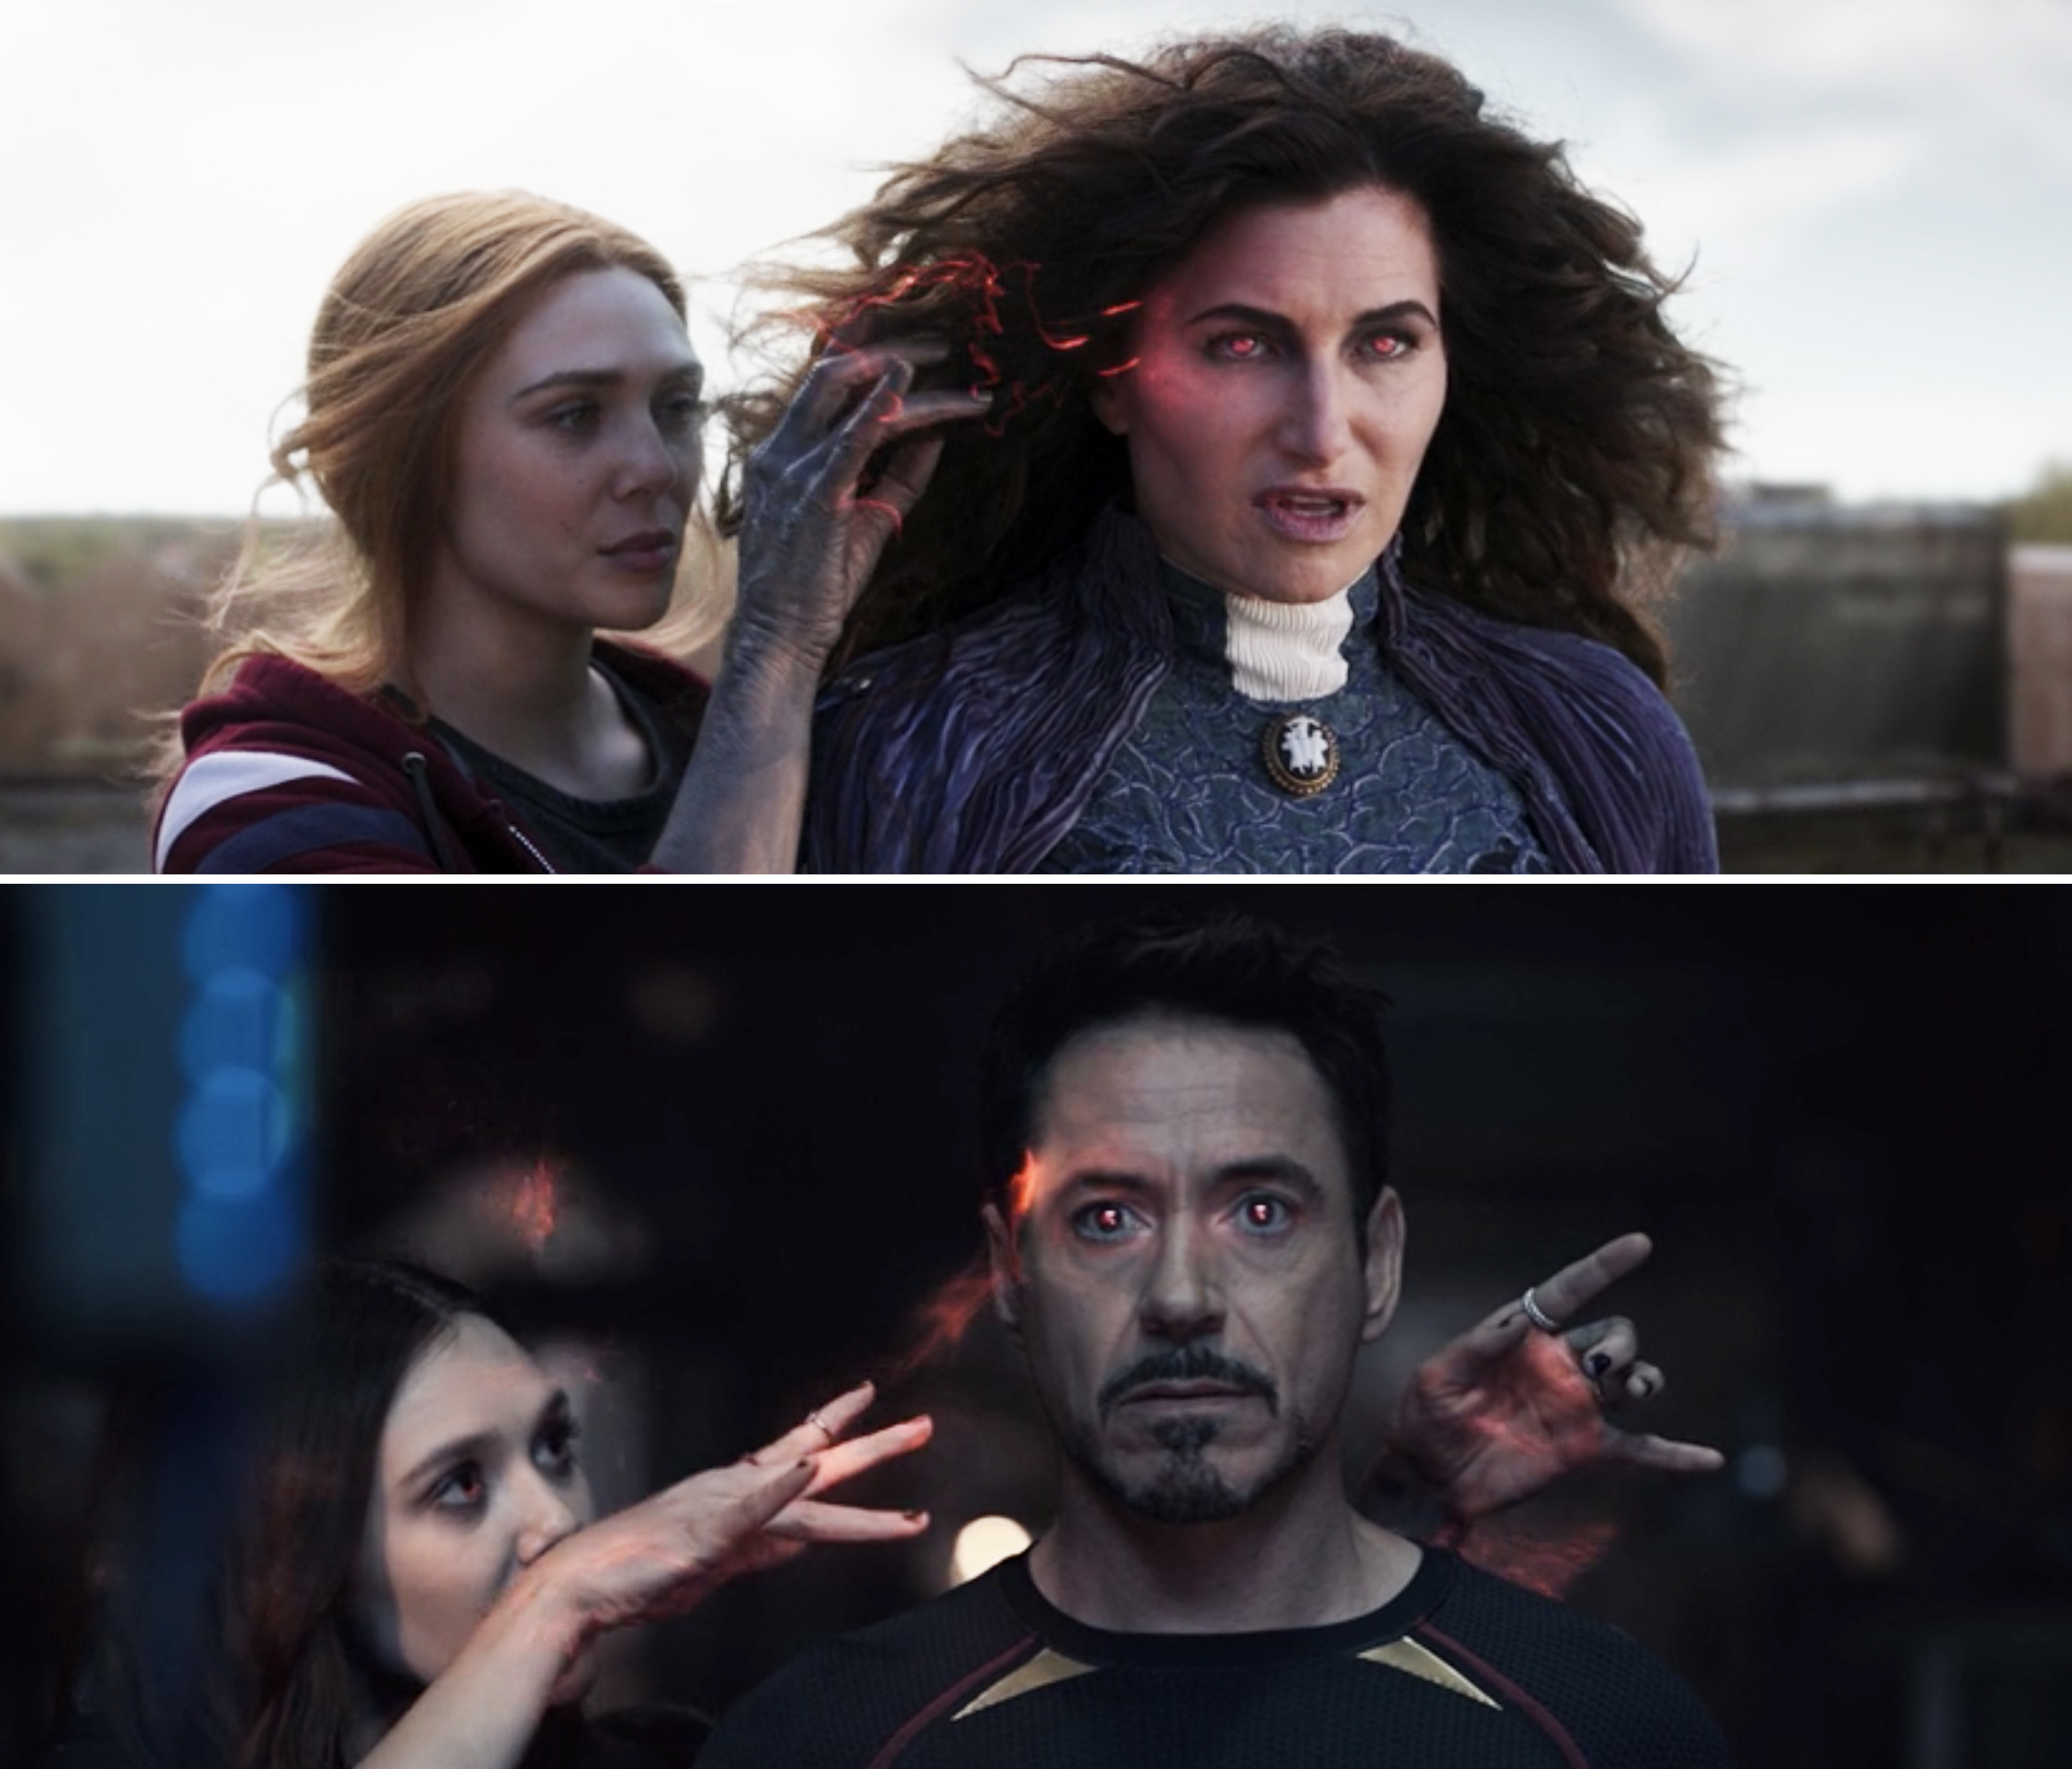 Wanda using her magic on Agatha vs. using her magic on Tony Stark